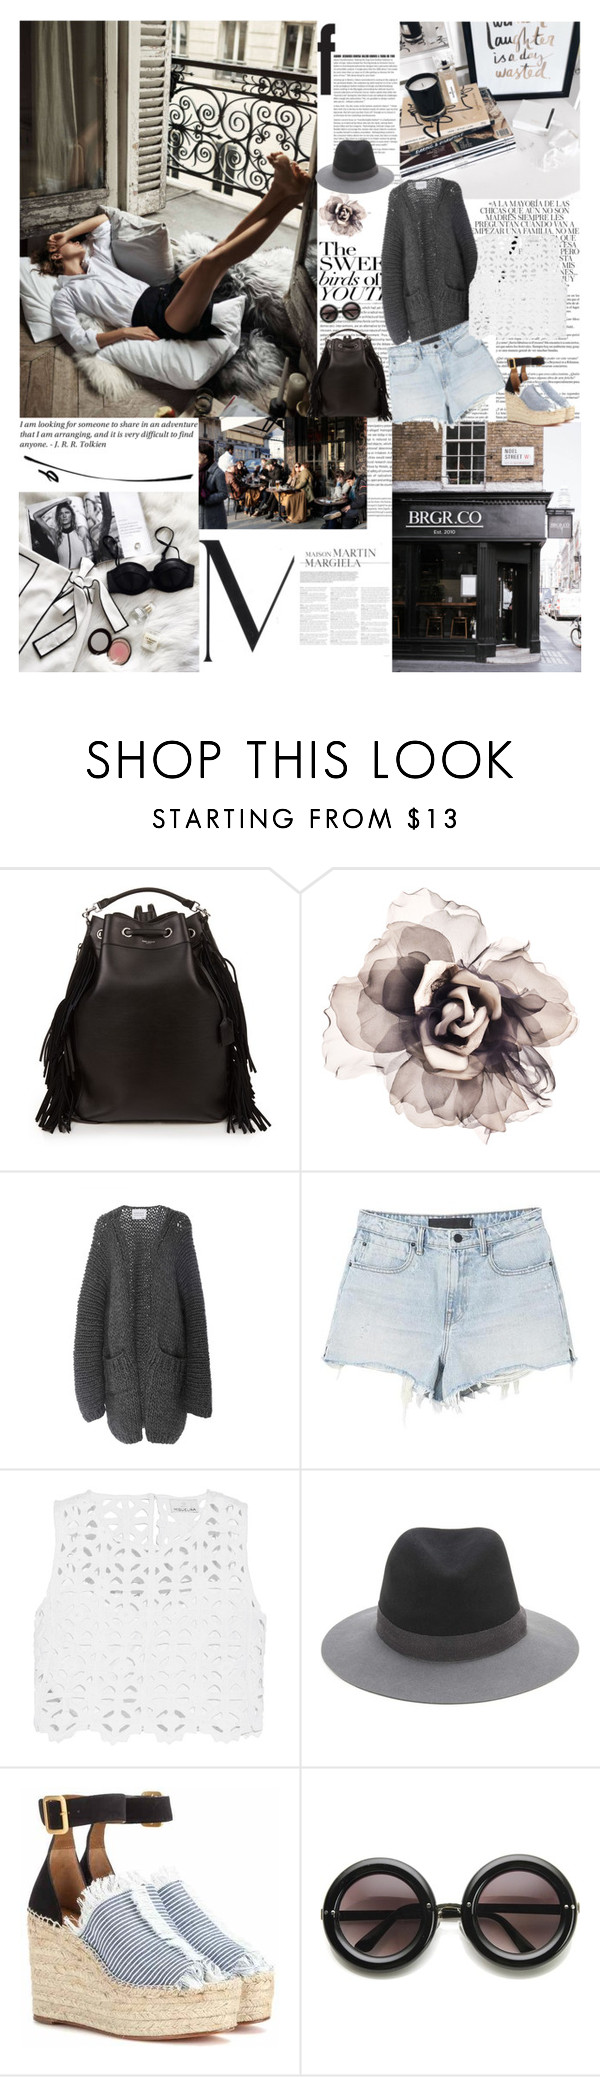 """""""Sunday clears away the rust of the whole week... by Joseph Addison"""" by valentina-back ❤ liked on Polyvore featuring Whiteley, Oris, Dollhouse, Prada, Yves Saint Laurent, Bundle MacLaren Millinery, I Love Mr. Mittens, Alexander Wang, Miguelina and rag & bone"""